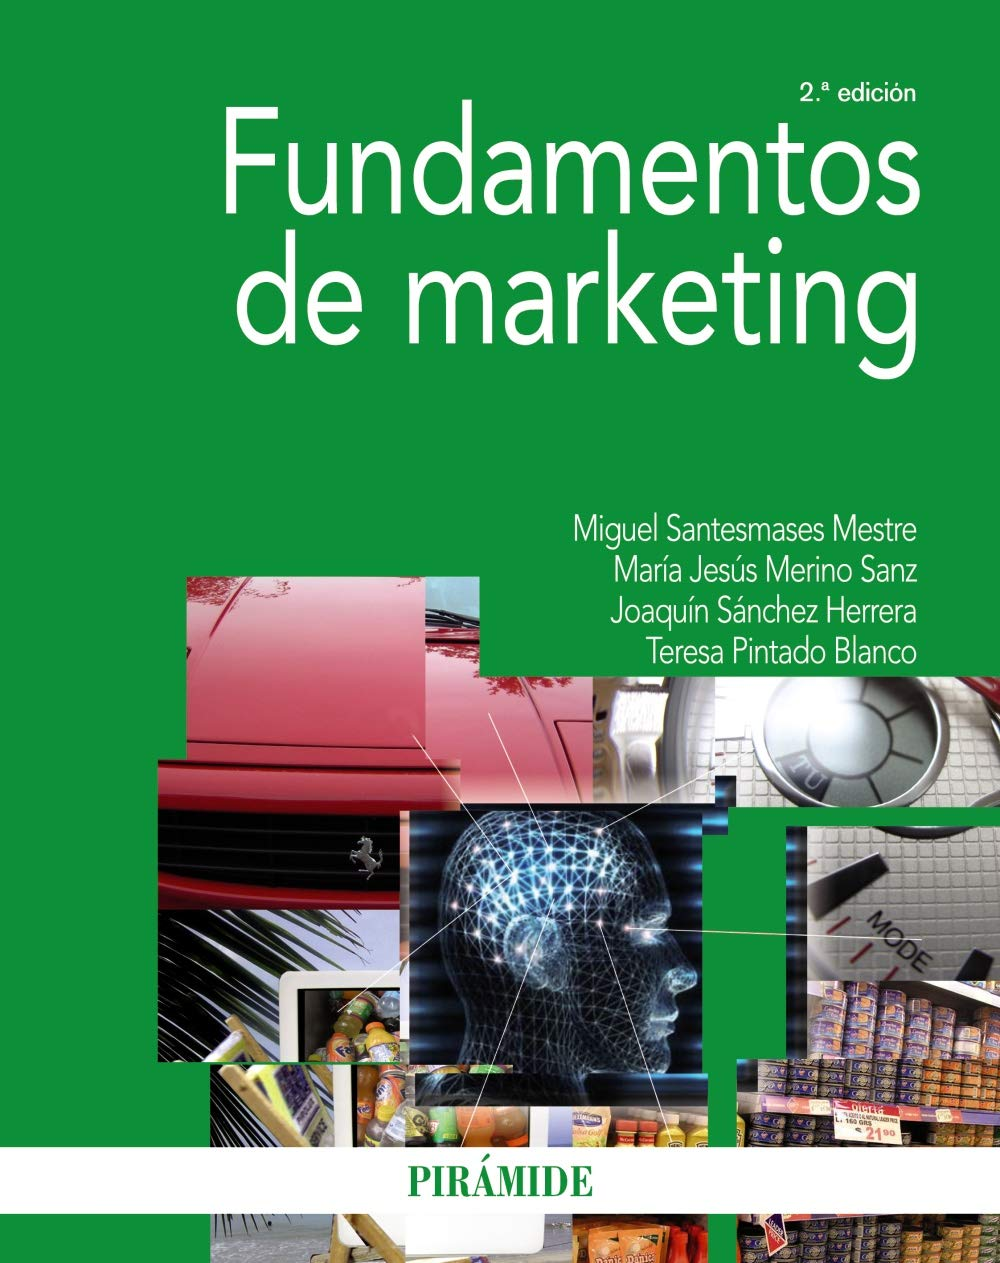 Download Fundamentos de marketing (Economía y Empresa)